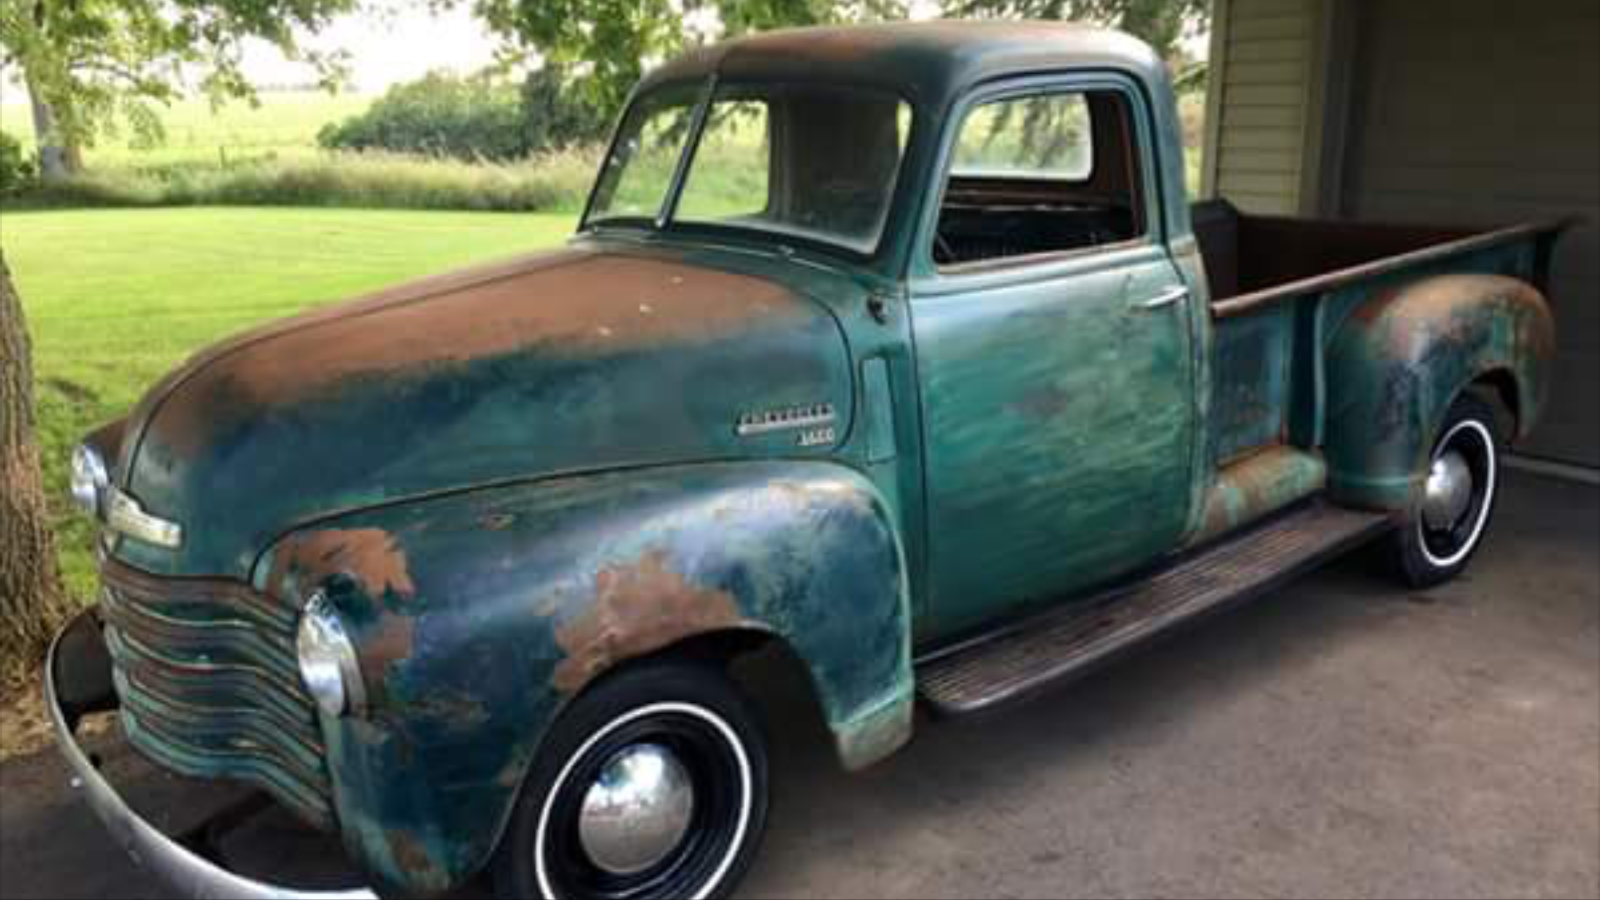 Ebay American Chevrolet 3800 Pick Up Truck Project Uk V5 Awesome